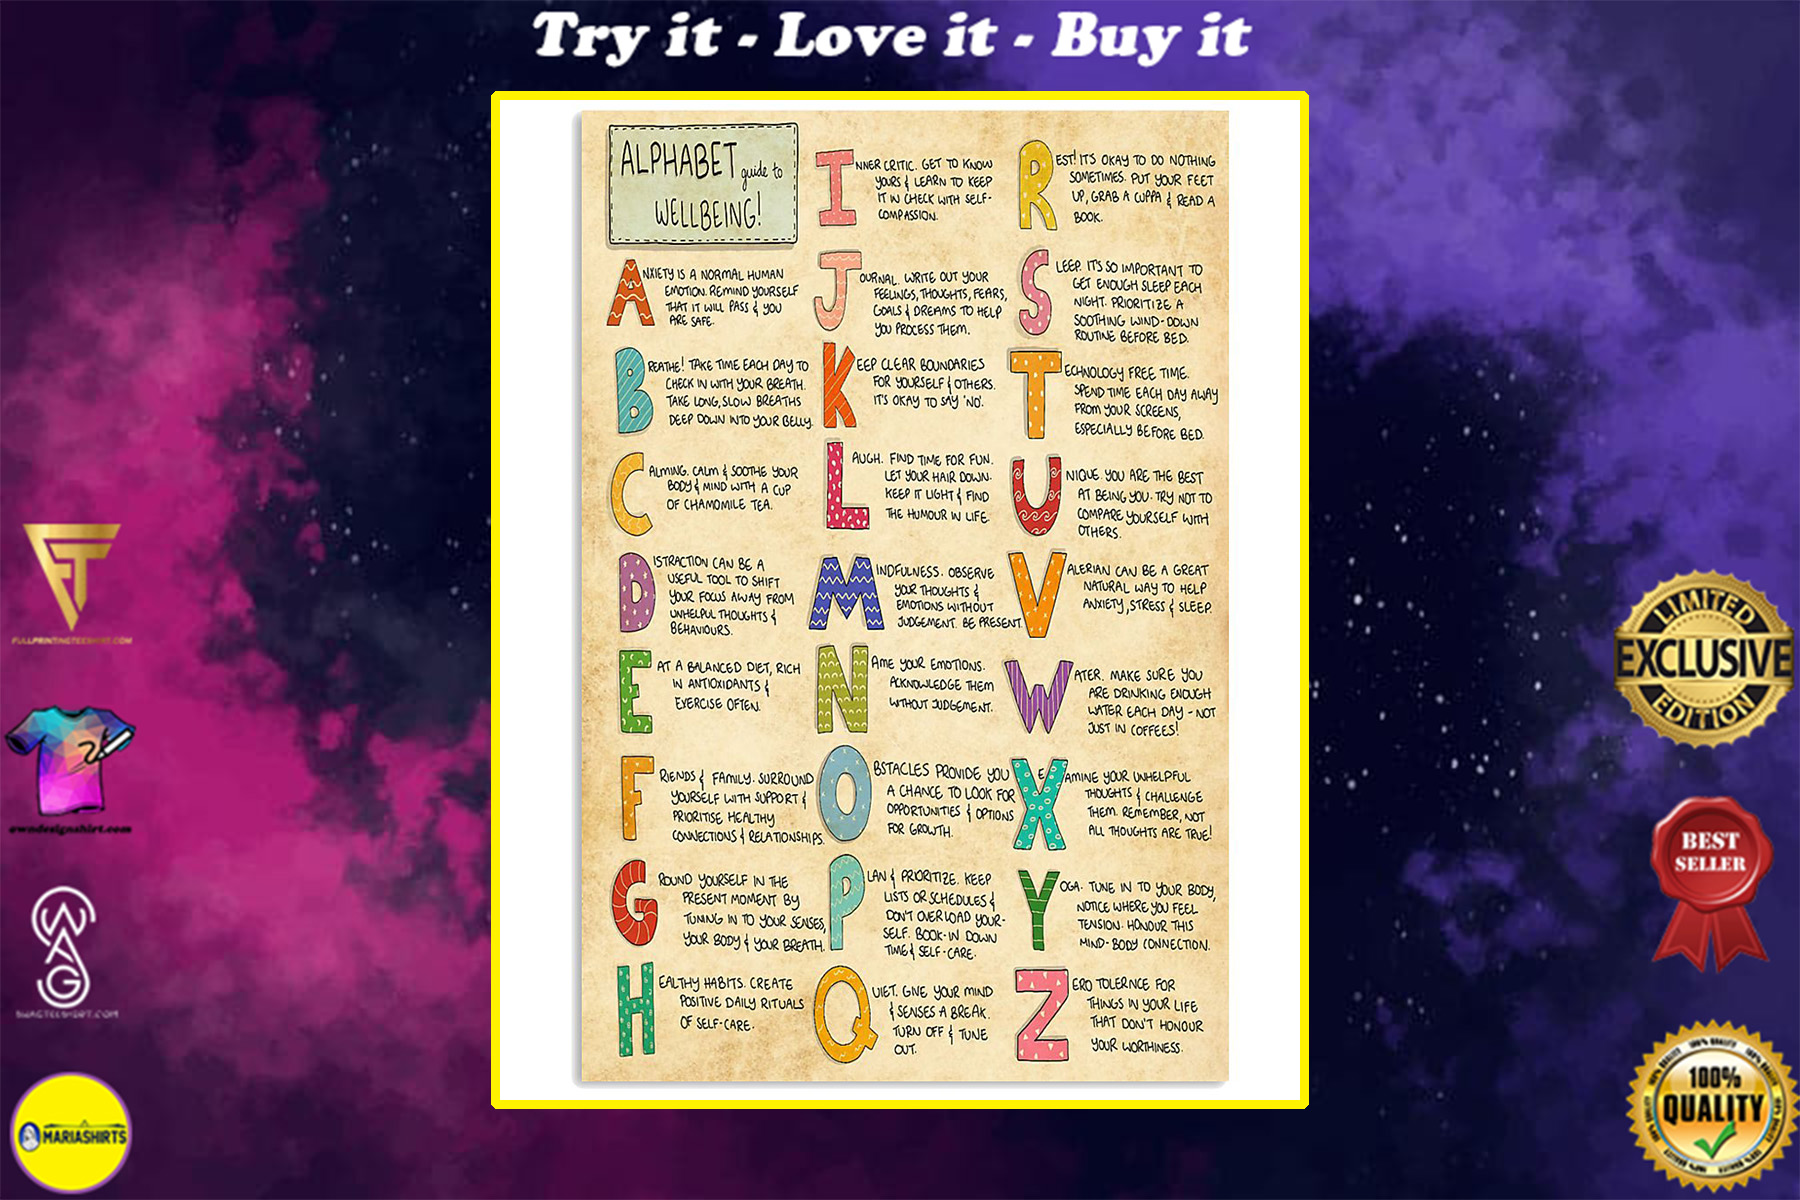 vintage social worker alphabet guide to wellbeing poster